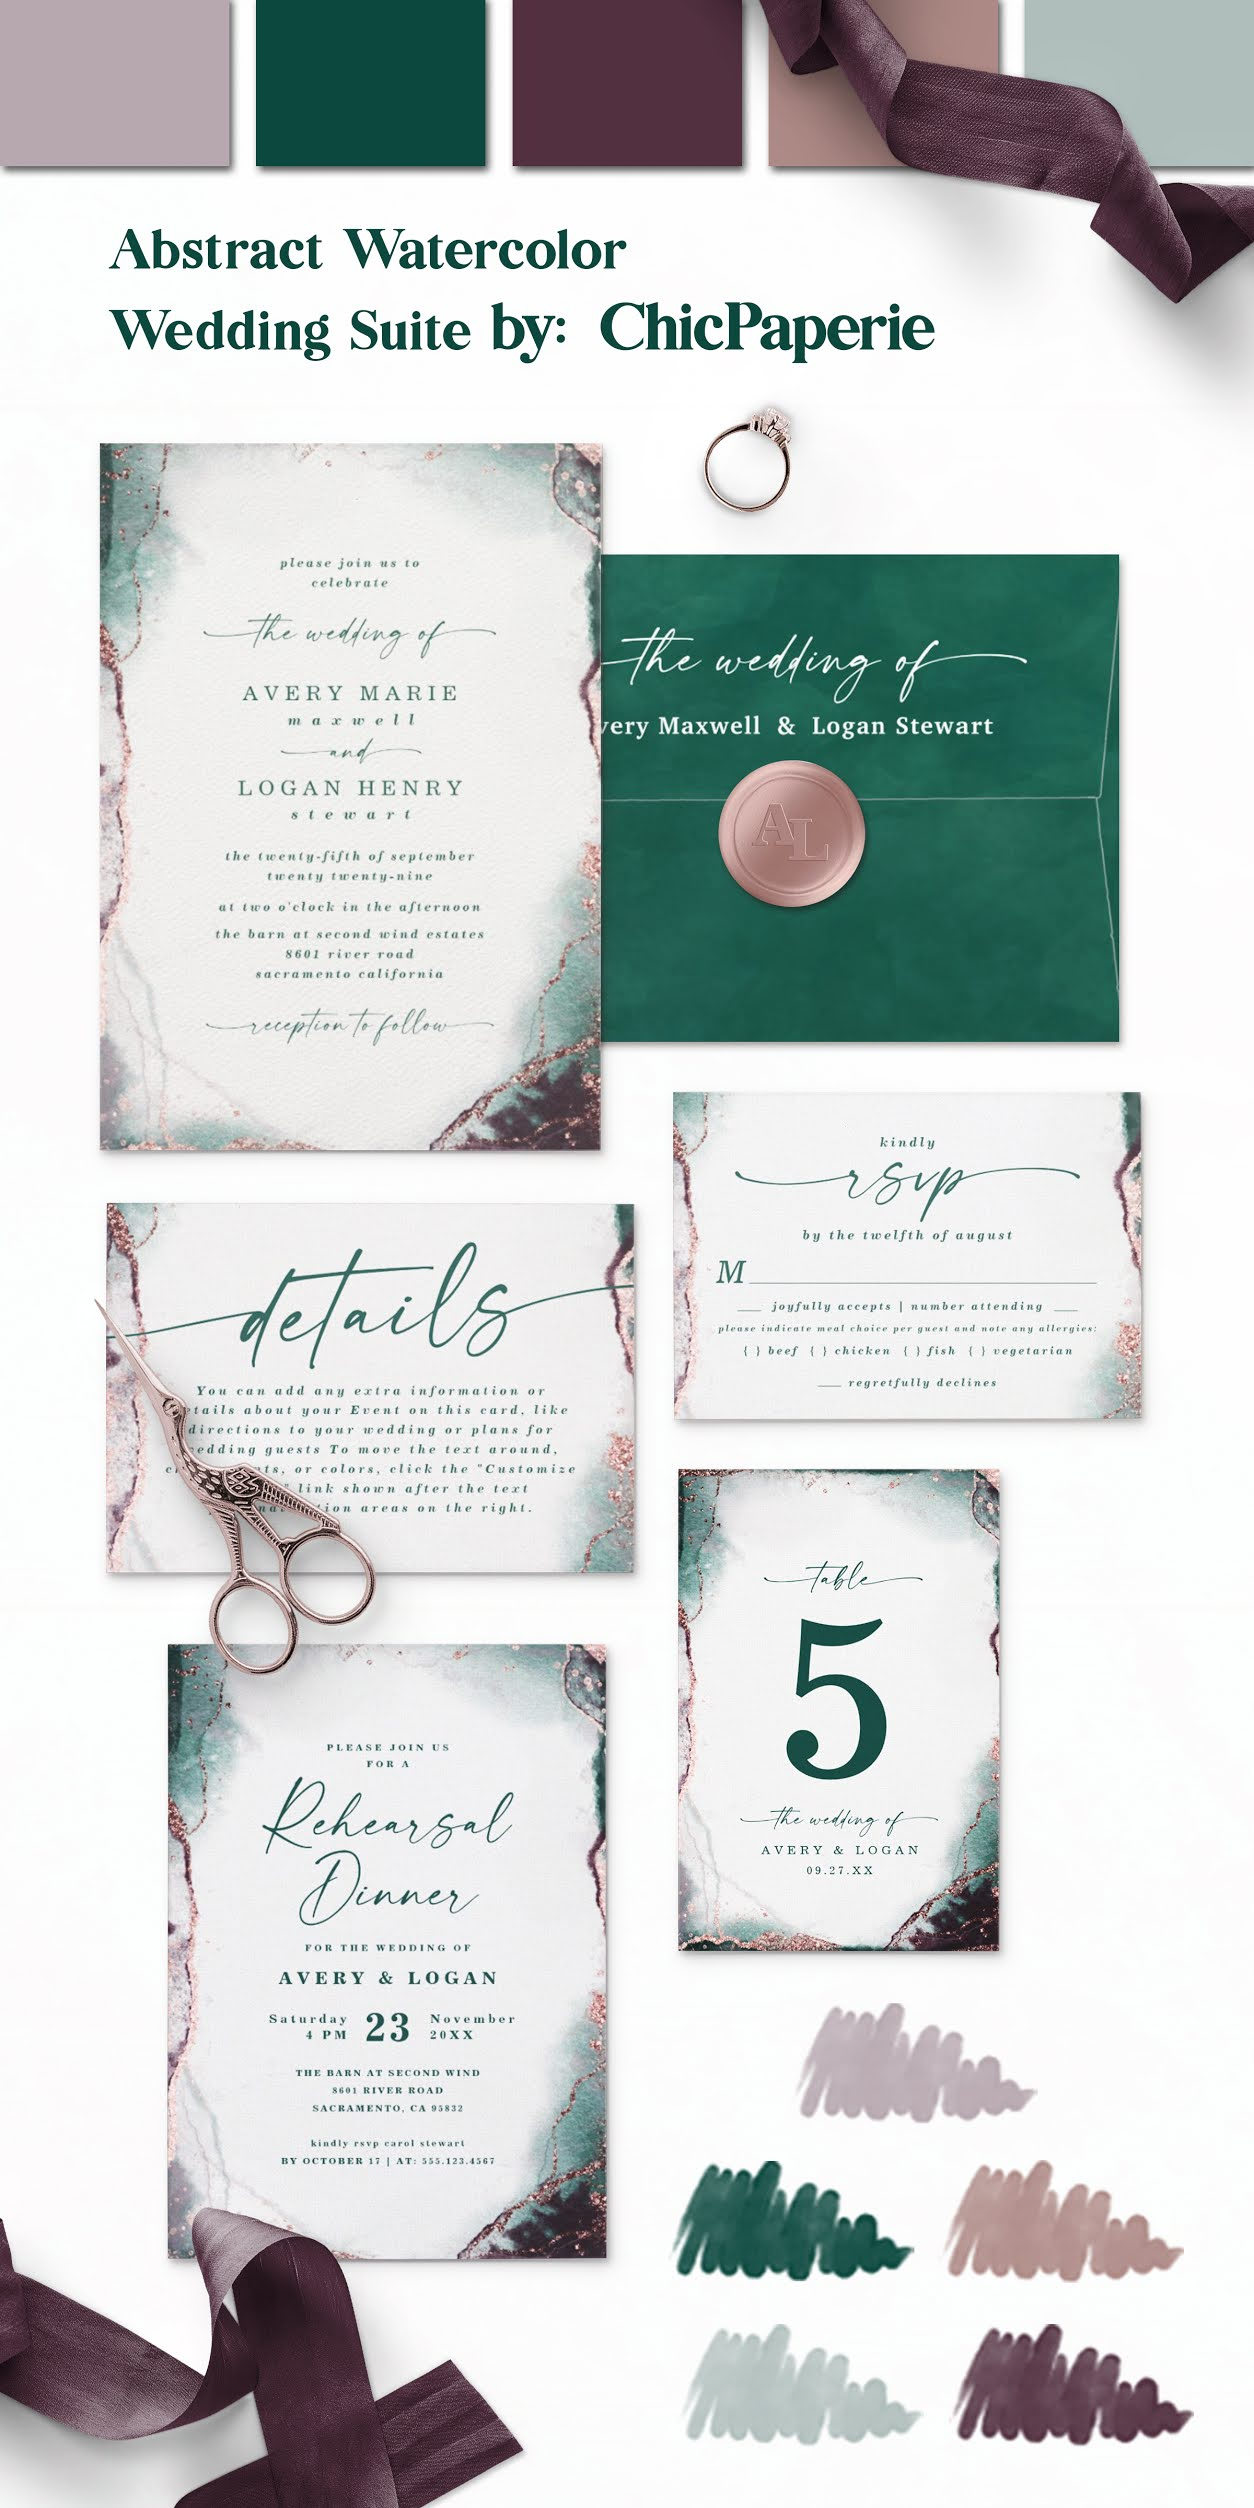 Abstract Watercolor Wedding Invitation Suite in the Emerald Green Colorway: Wedding Invitations, Color Editable Envelopes, Rose Gold Wax Seal Stickers, Details cards, RSVP Meal Choice Cards, Rehearsal Dinner Invites, and Table Number Cards